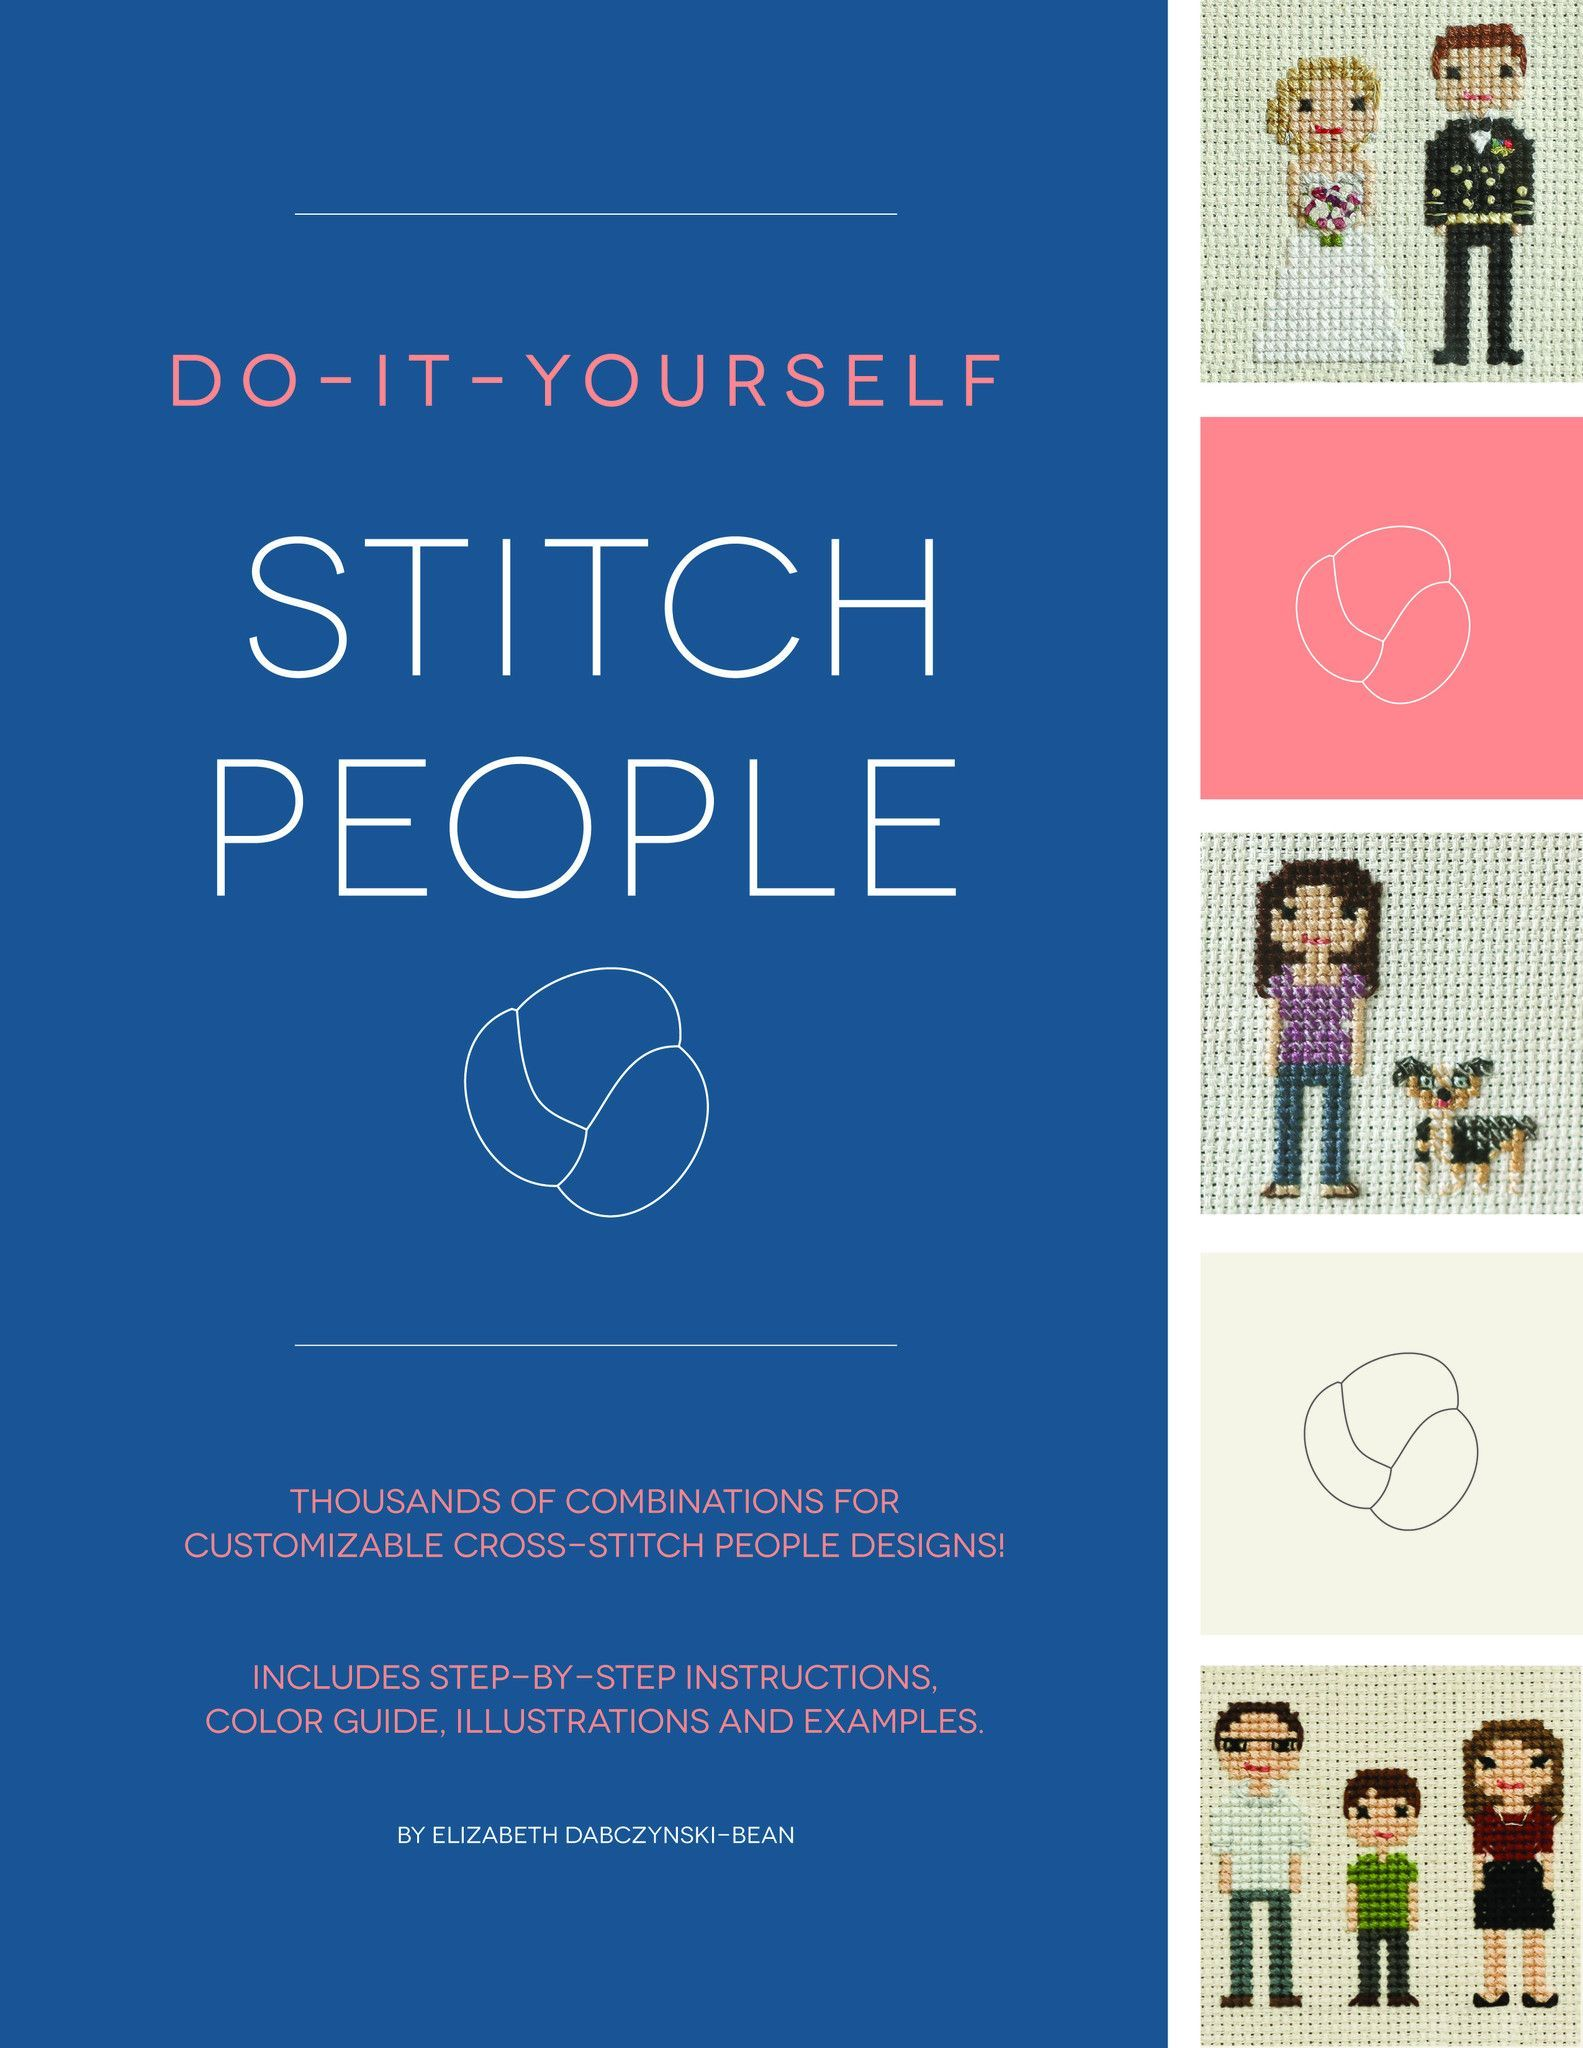 Do it yourself stitch people book cross stitch family cross make the perfect cross stitch family portrait with our diy stitch people book designs and recommendations for hair styles skin tones clothing choices solutioingenieria Images